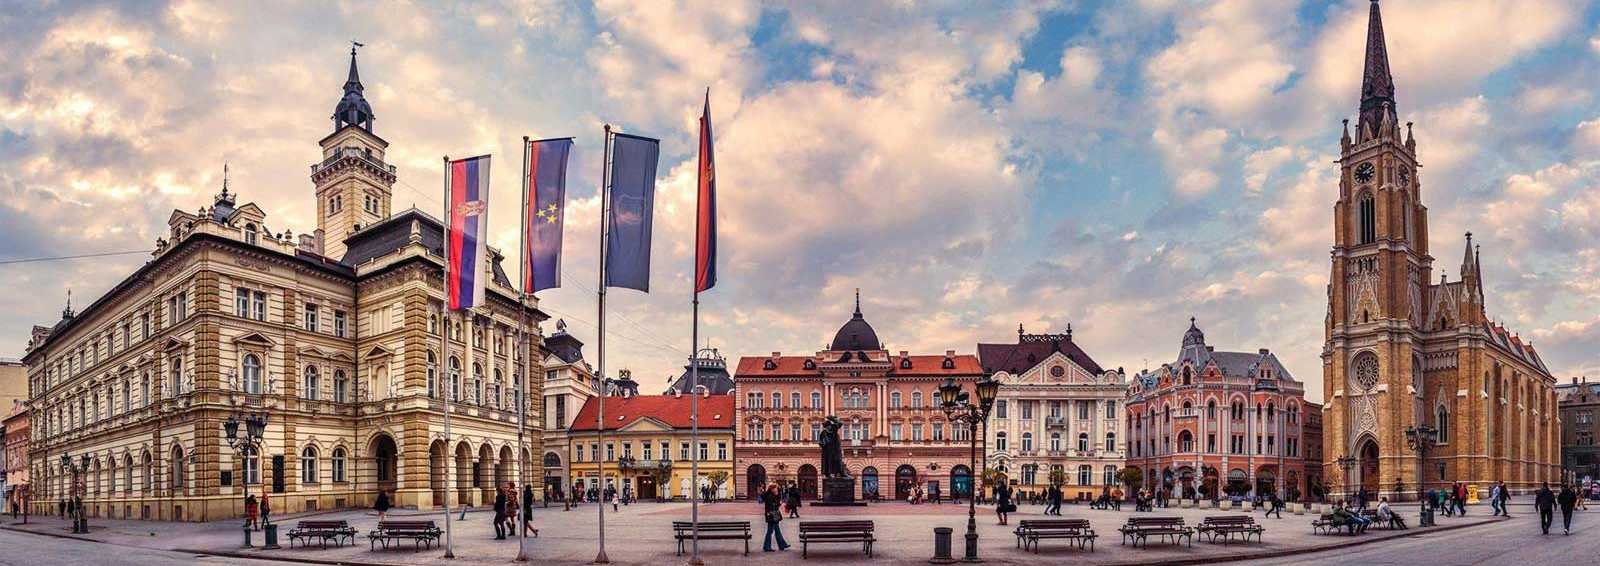 Novi Sad, Vojvodina, Serbia's second city